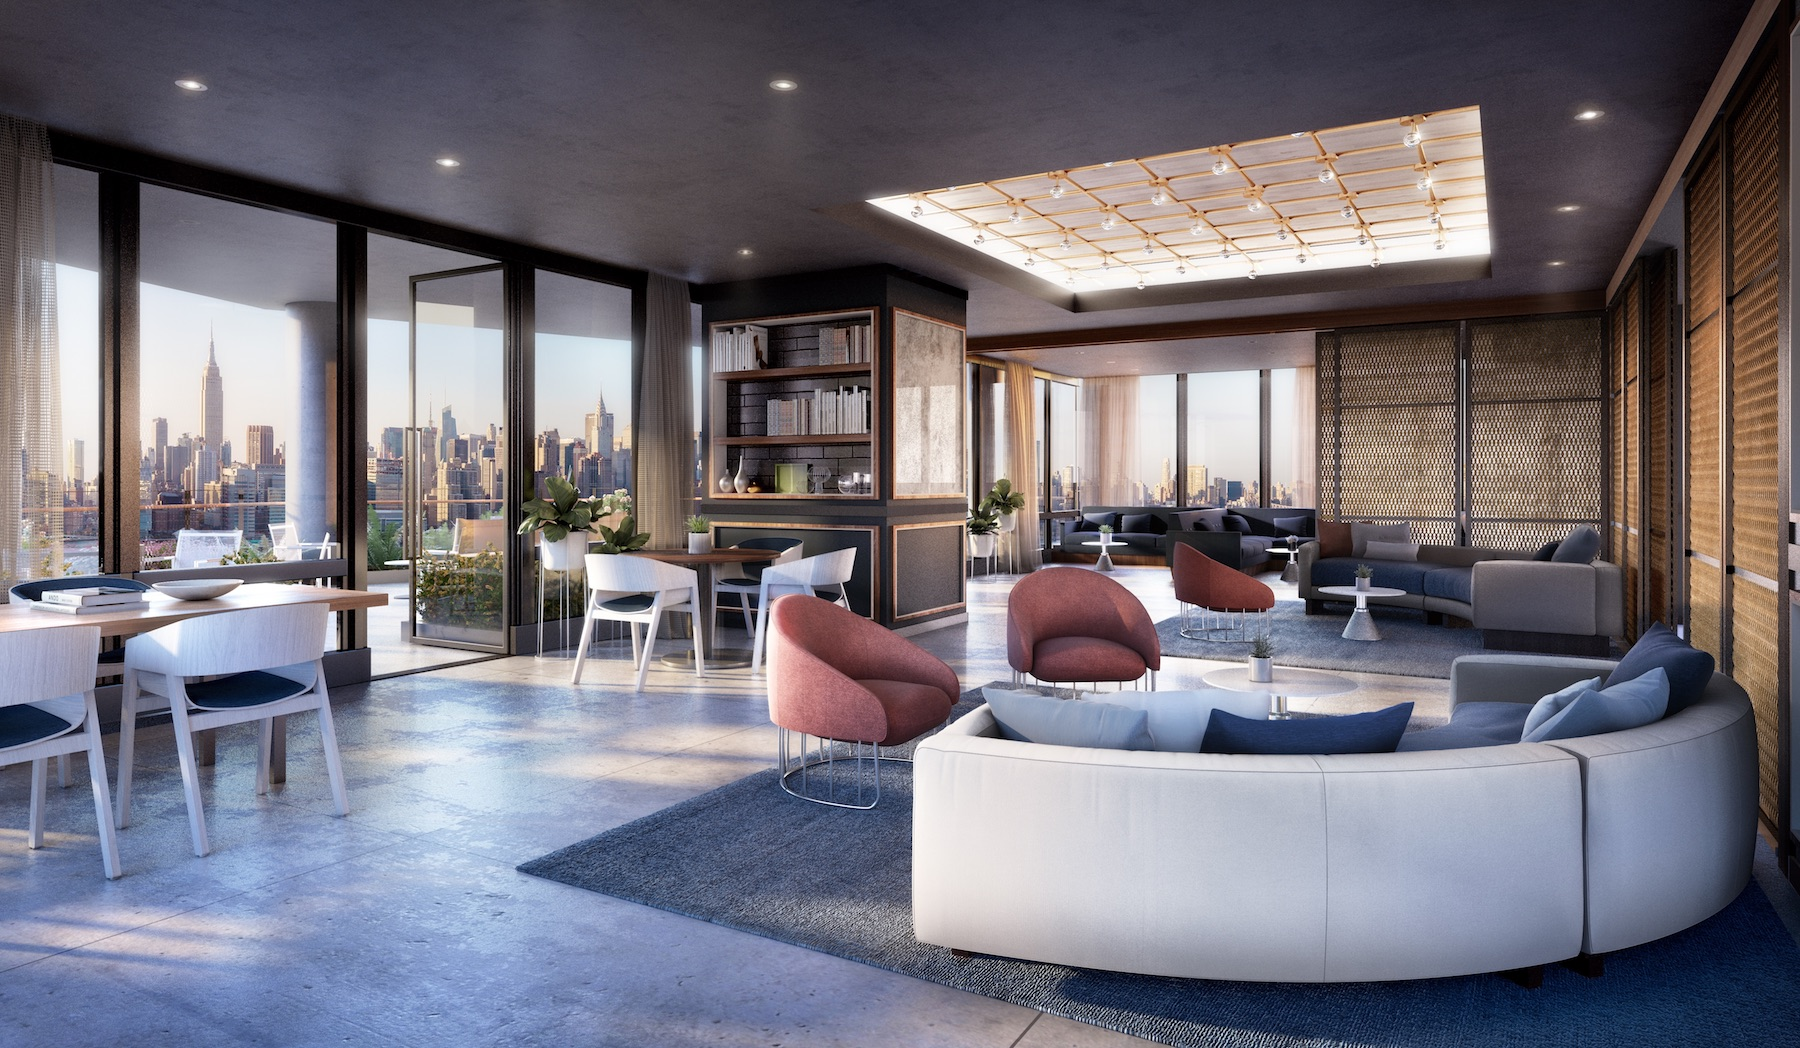 Condos in greenpoint 39 s tallest tower now up for grabs for for The terrace lounge menu